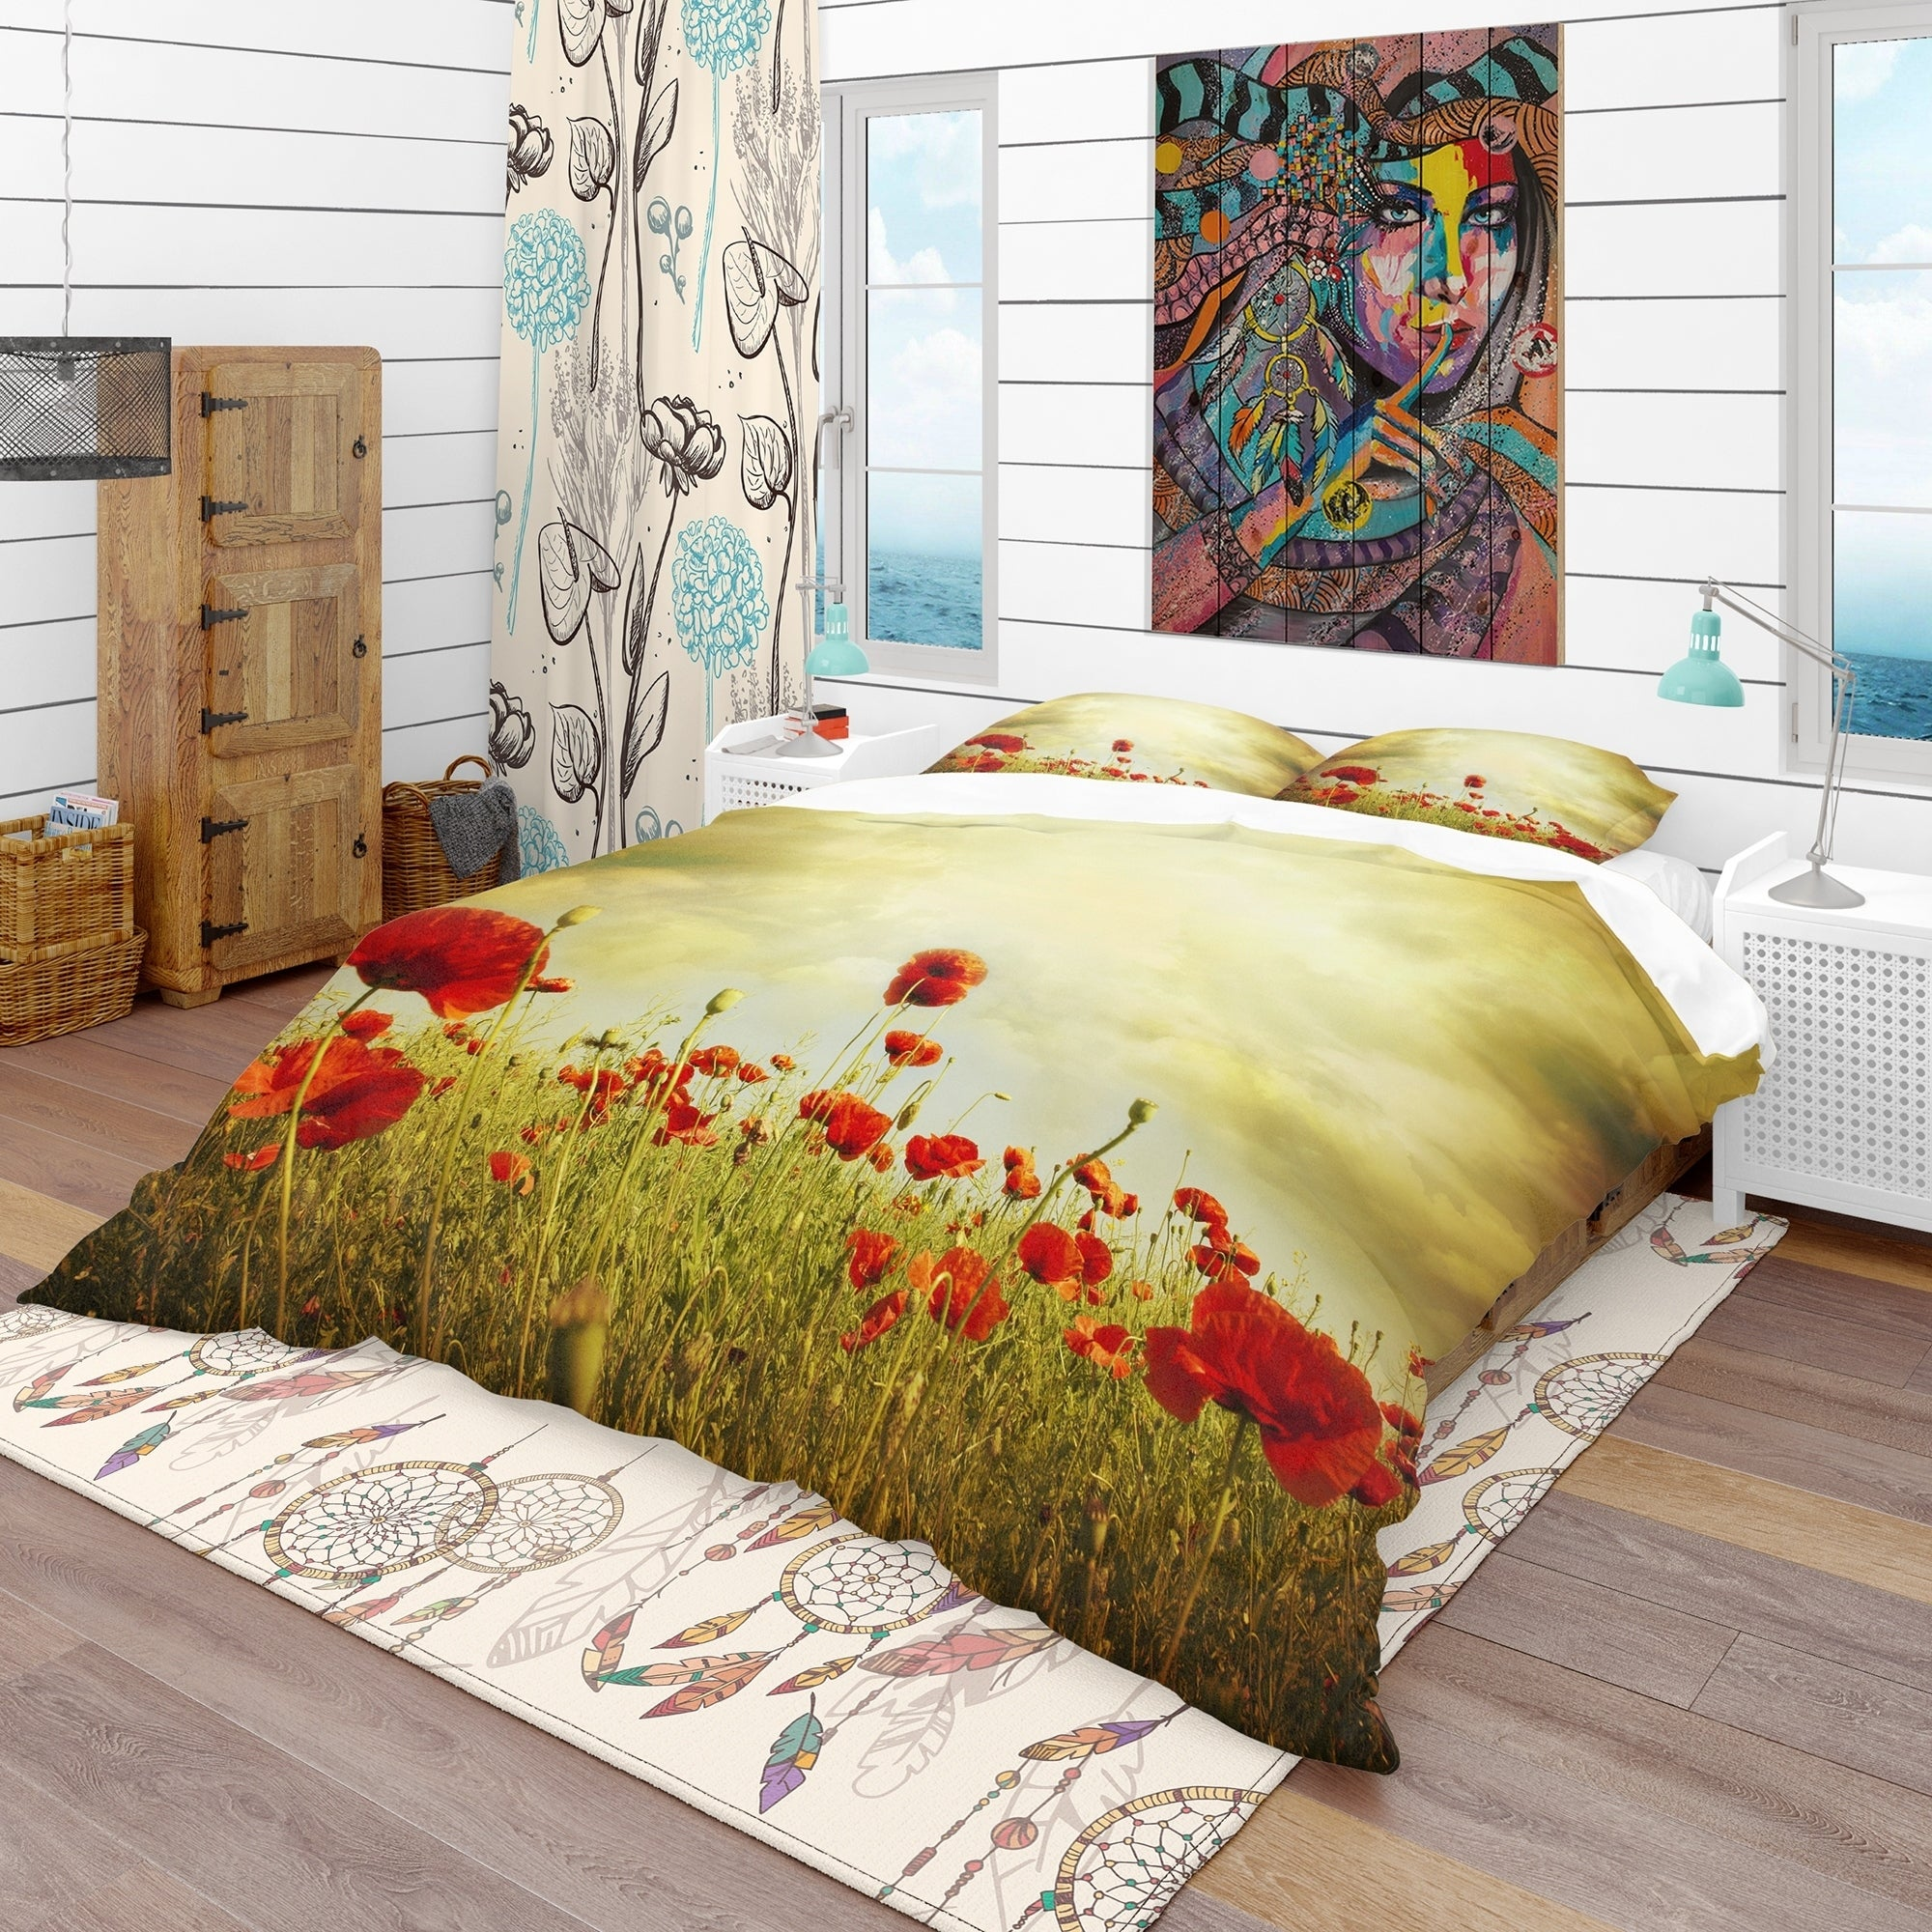 Luxury Poppy Yellow Duvet Cover Bedding Set With Pillow Cases Sointechile Cl